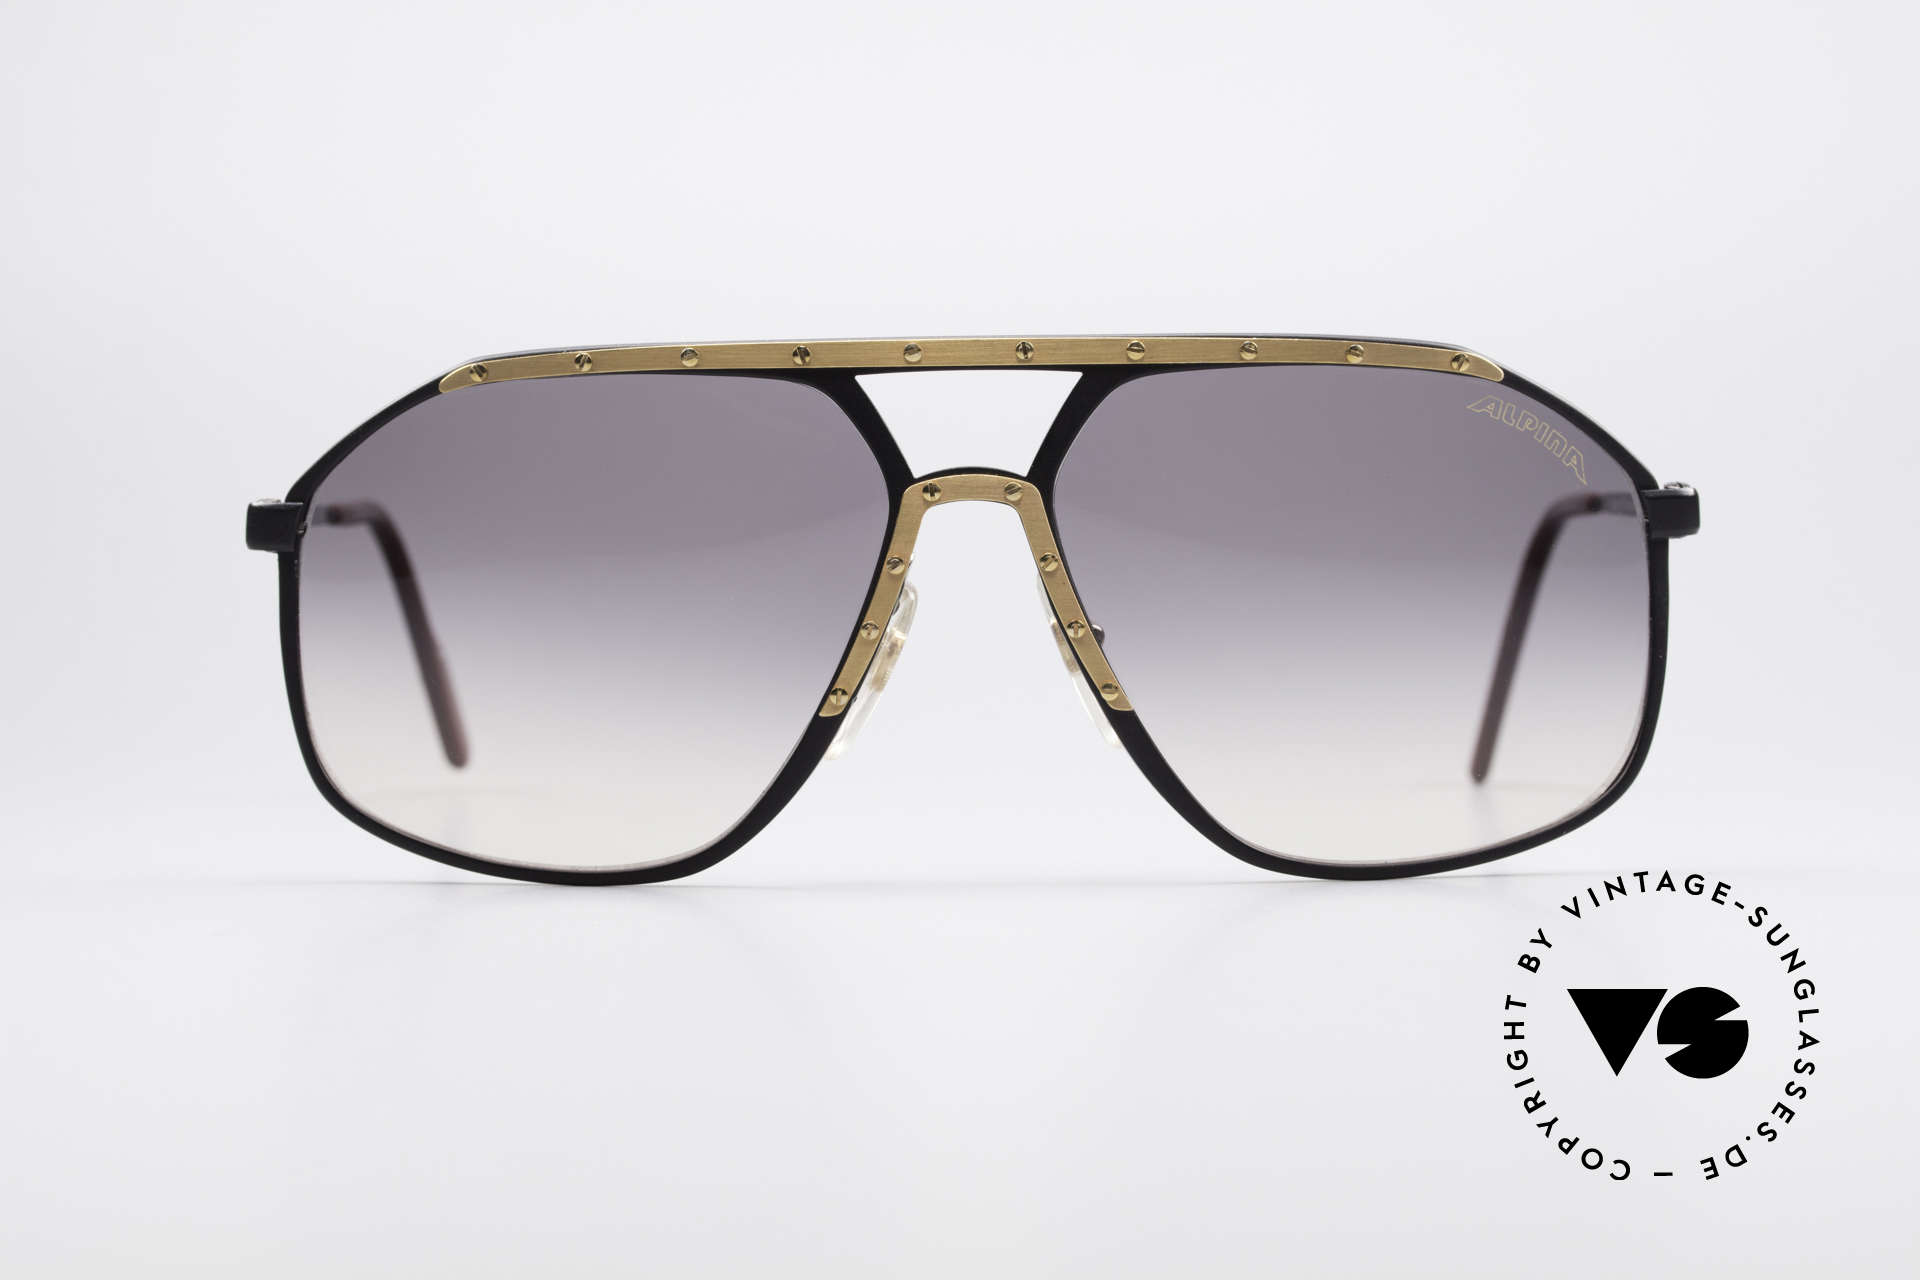 Alpina M1/7 Iconic Vintage Sunglasses, famous for the ornamental cover with the 18 screws, Made for Men